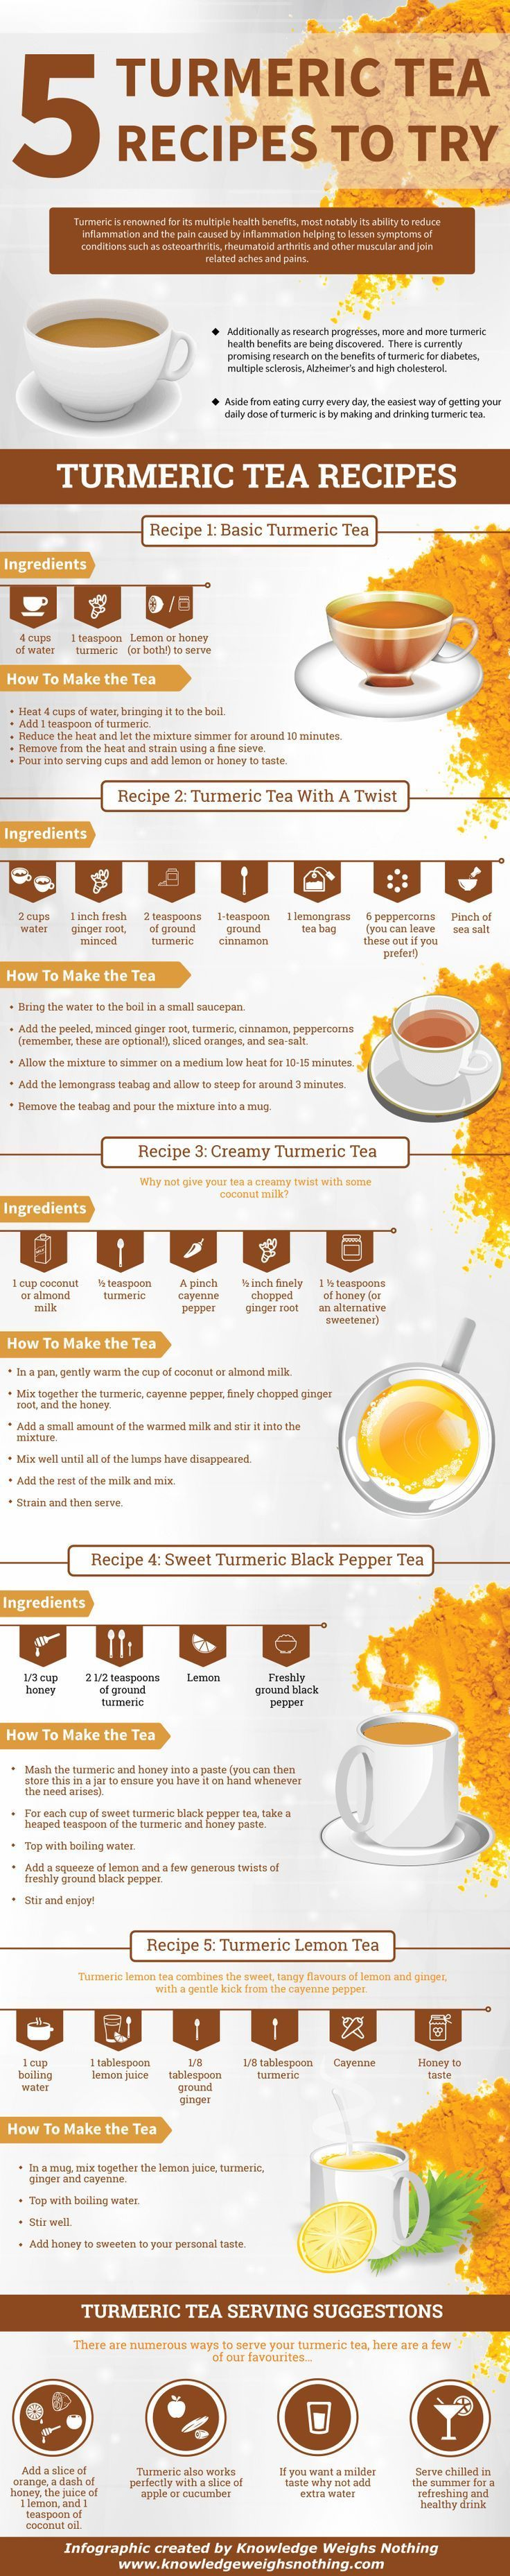 Turmeric Tea Infographic Web                                                                                                                                                                                 More